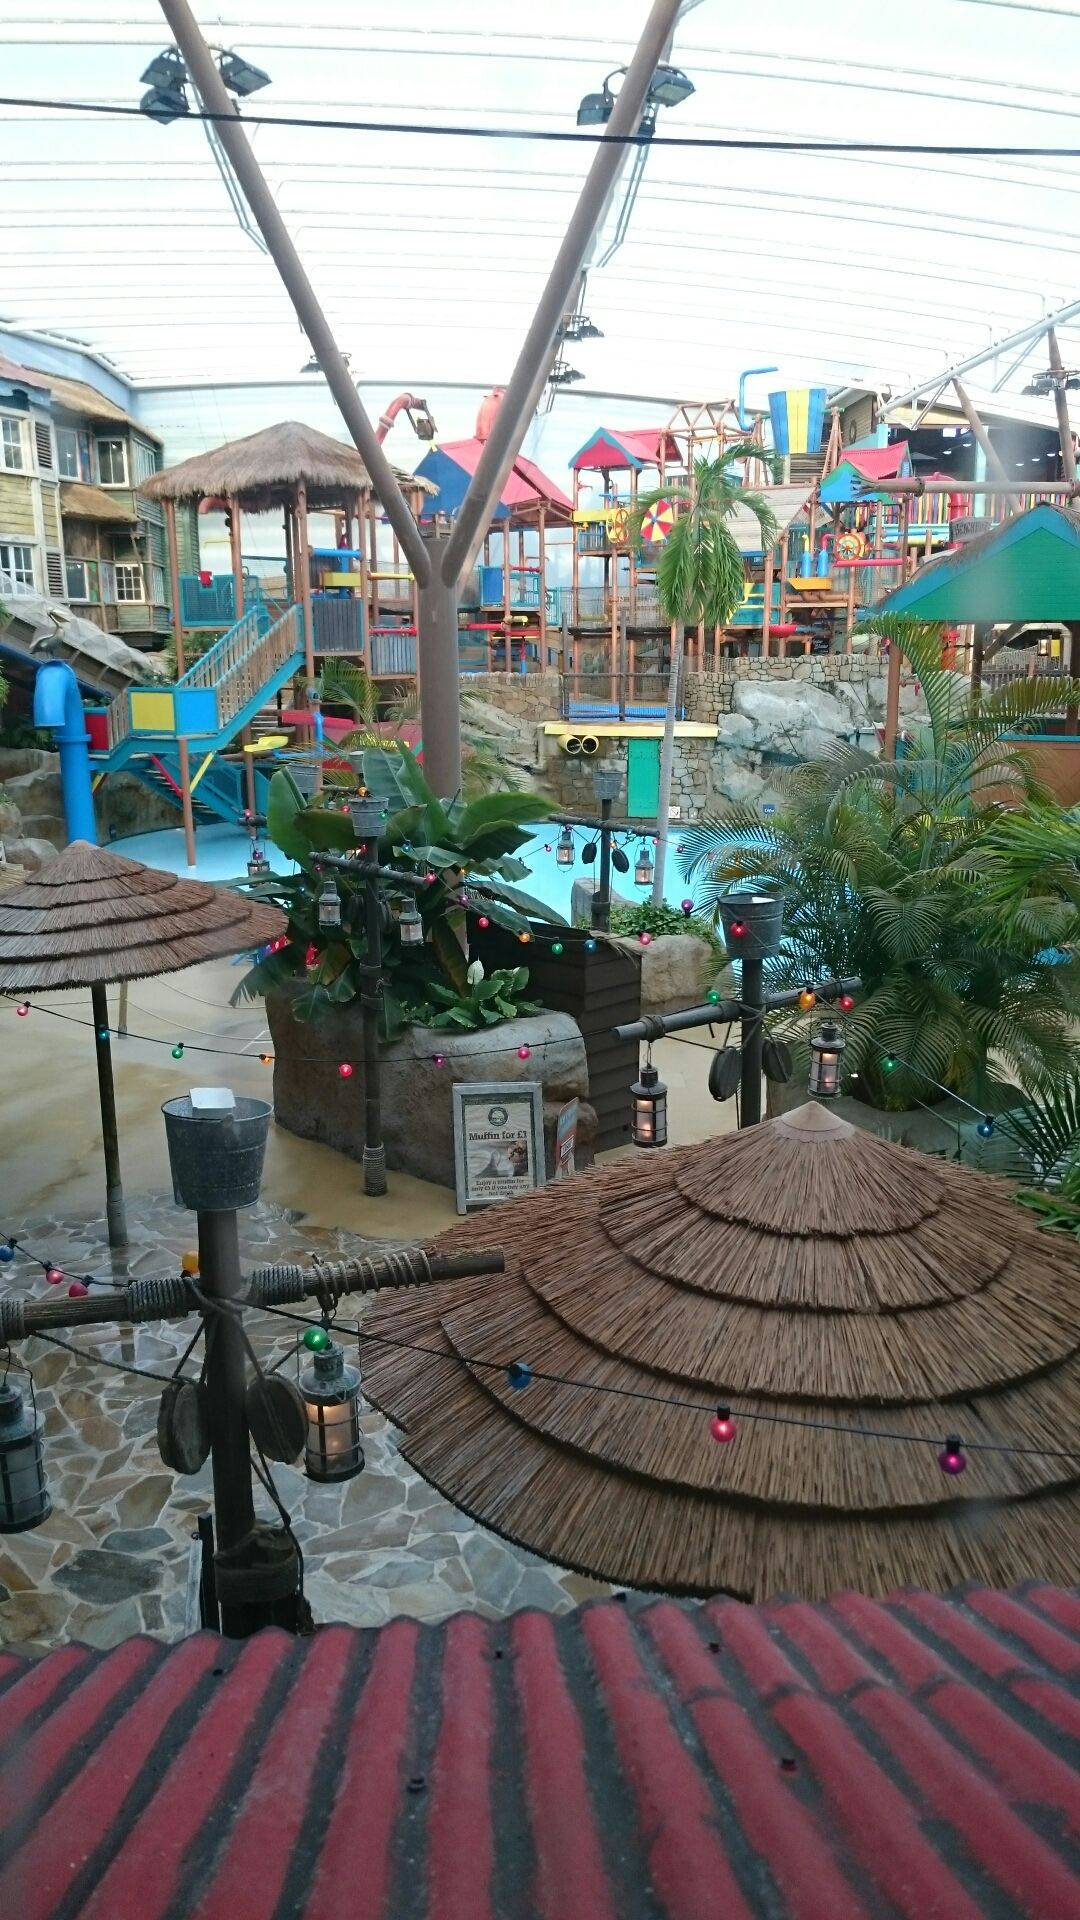 Alton Towers Hotel And Splash Landings Twinkly Tuesday